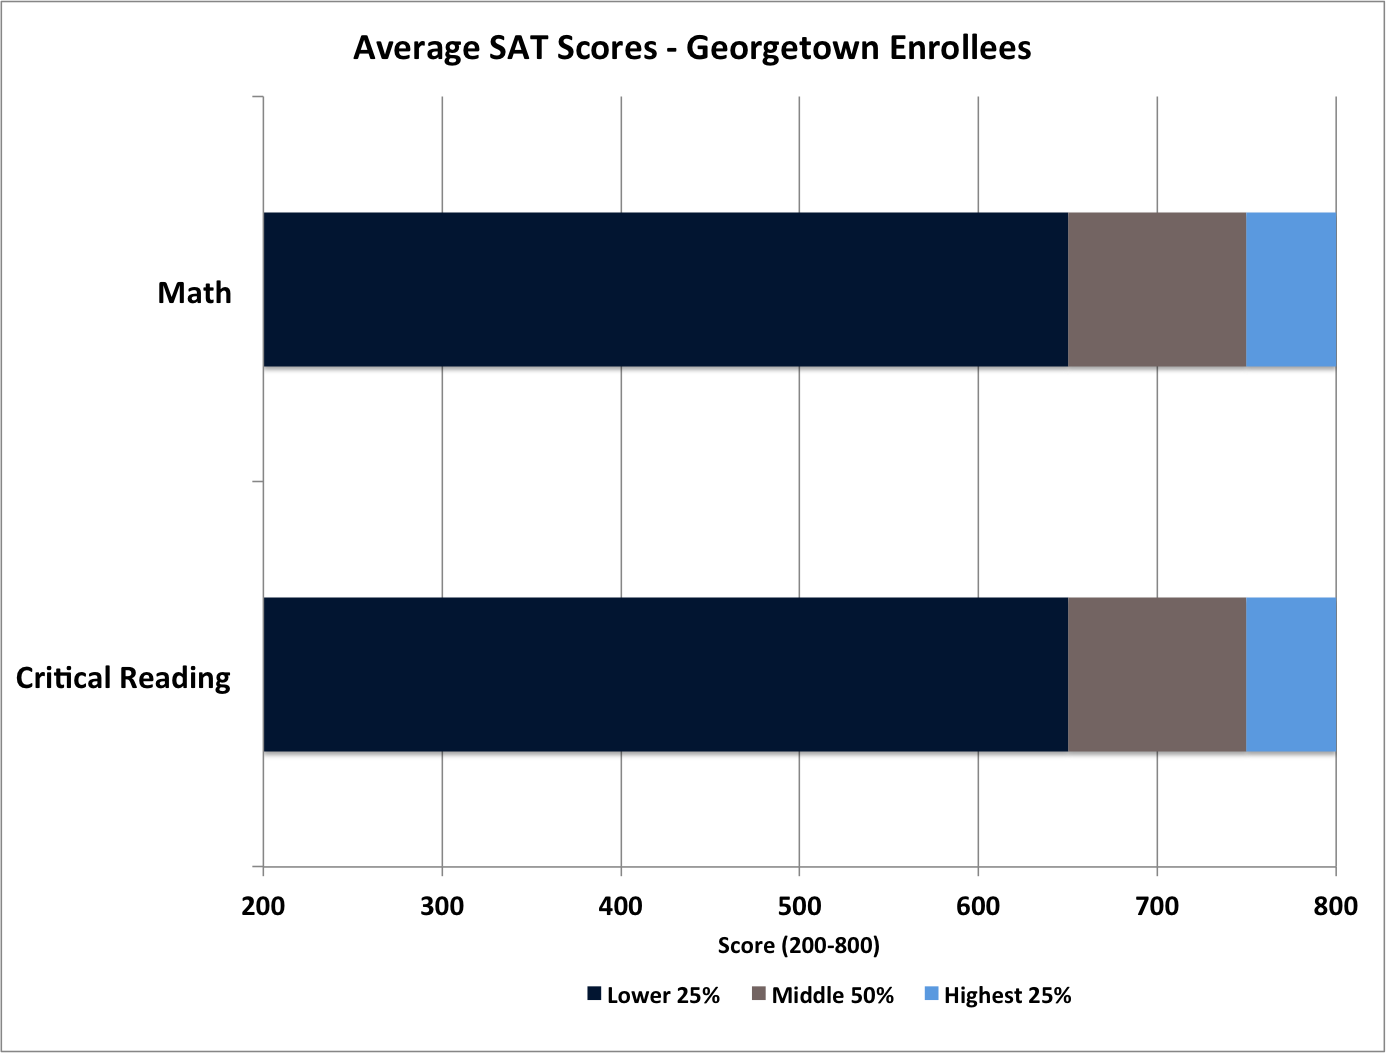 025 Essay Example Georgetown Sat Scores Stirring Essays Prompts University 2018 Application 2017 Full